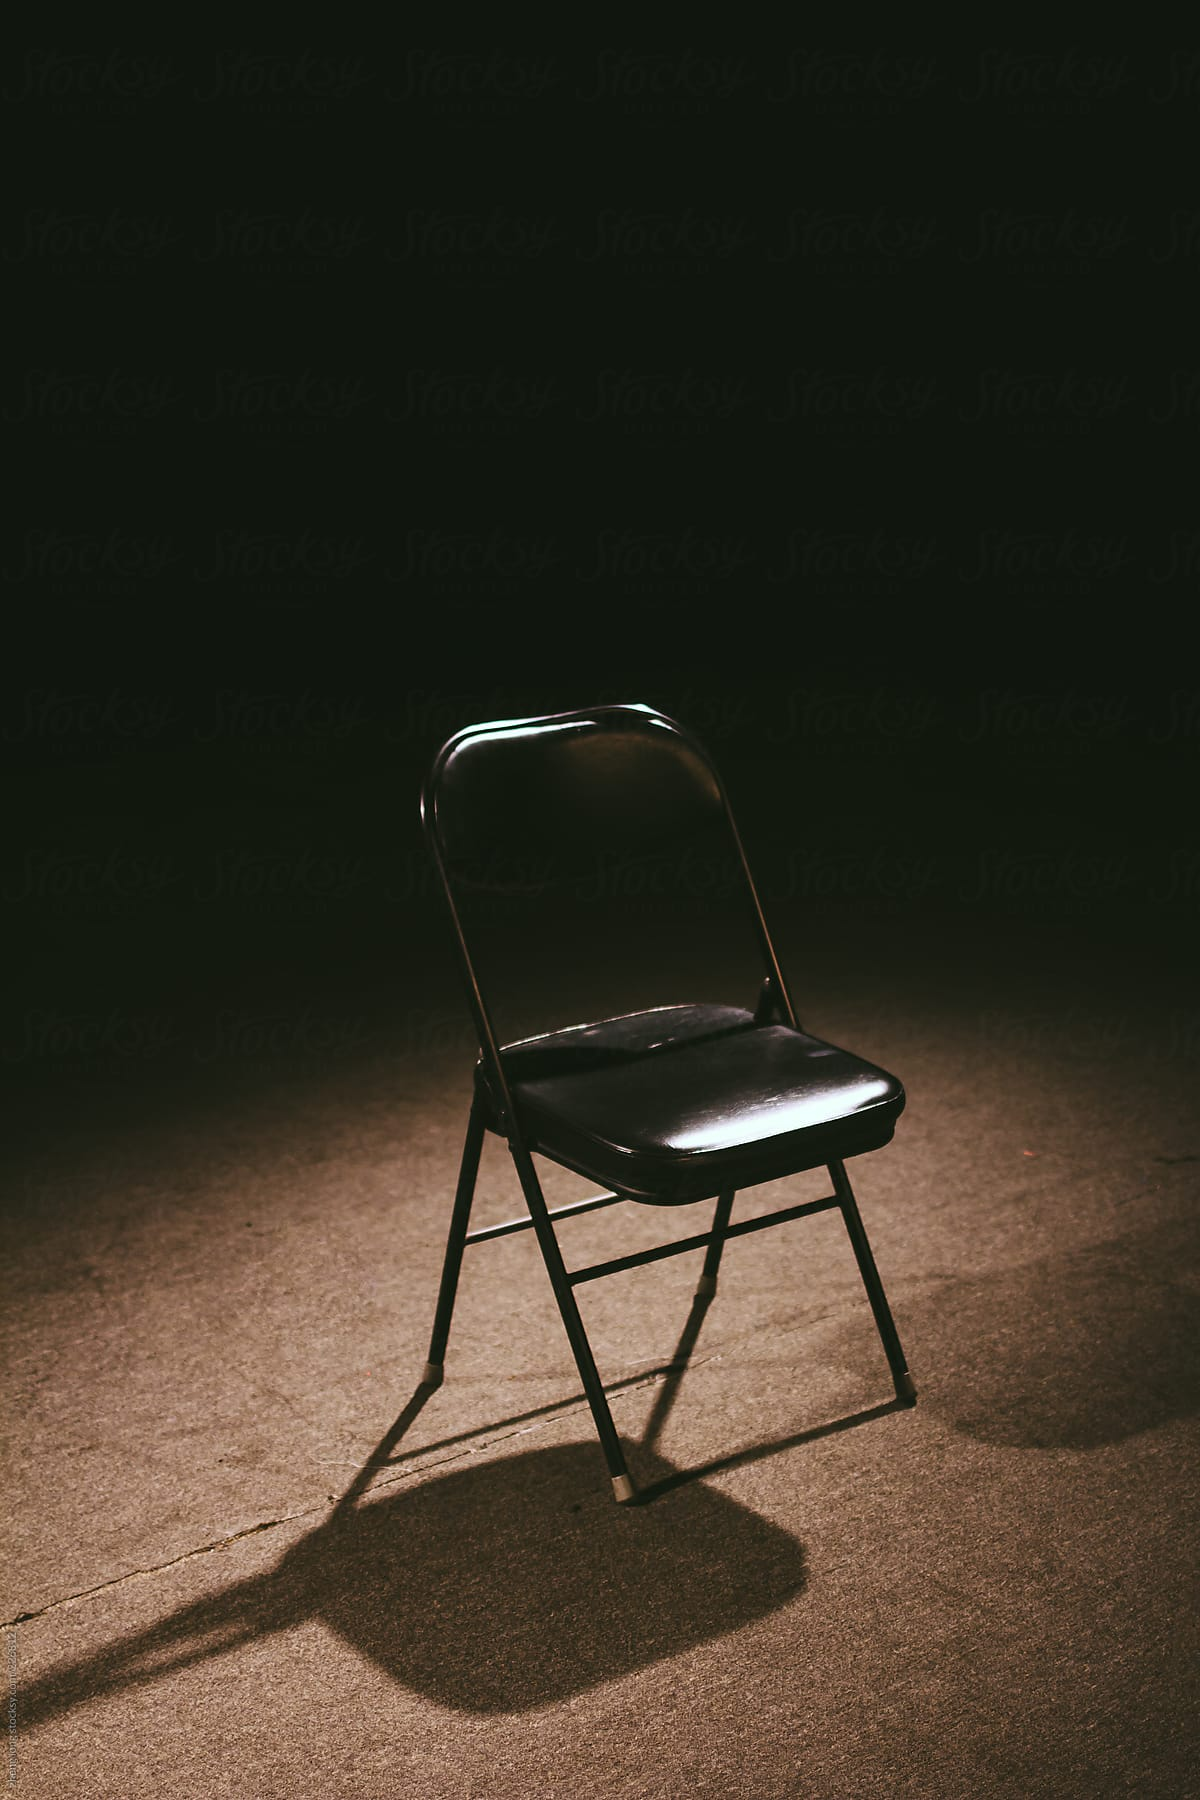 Stupendous Folding Chair Under The Light In The Theatre By Zheng Long Caraccident5 Cool Chair Designs And Ideas Caraccident5Info